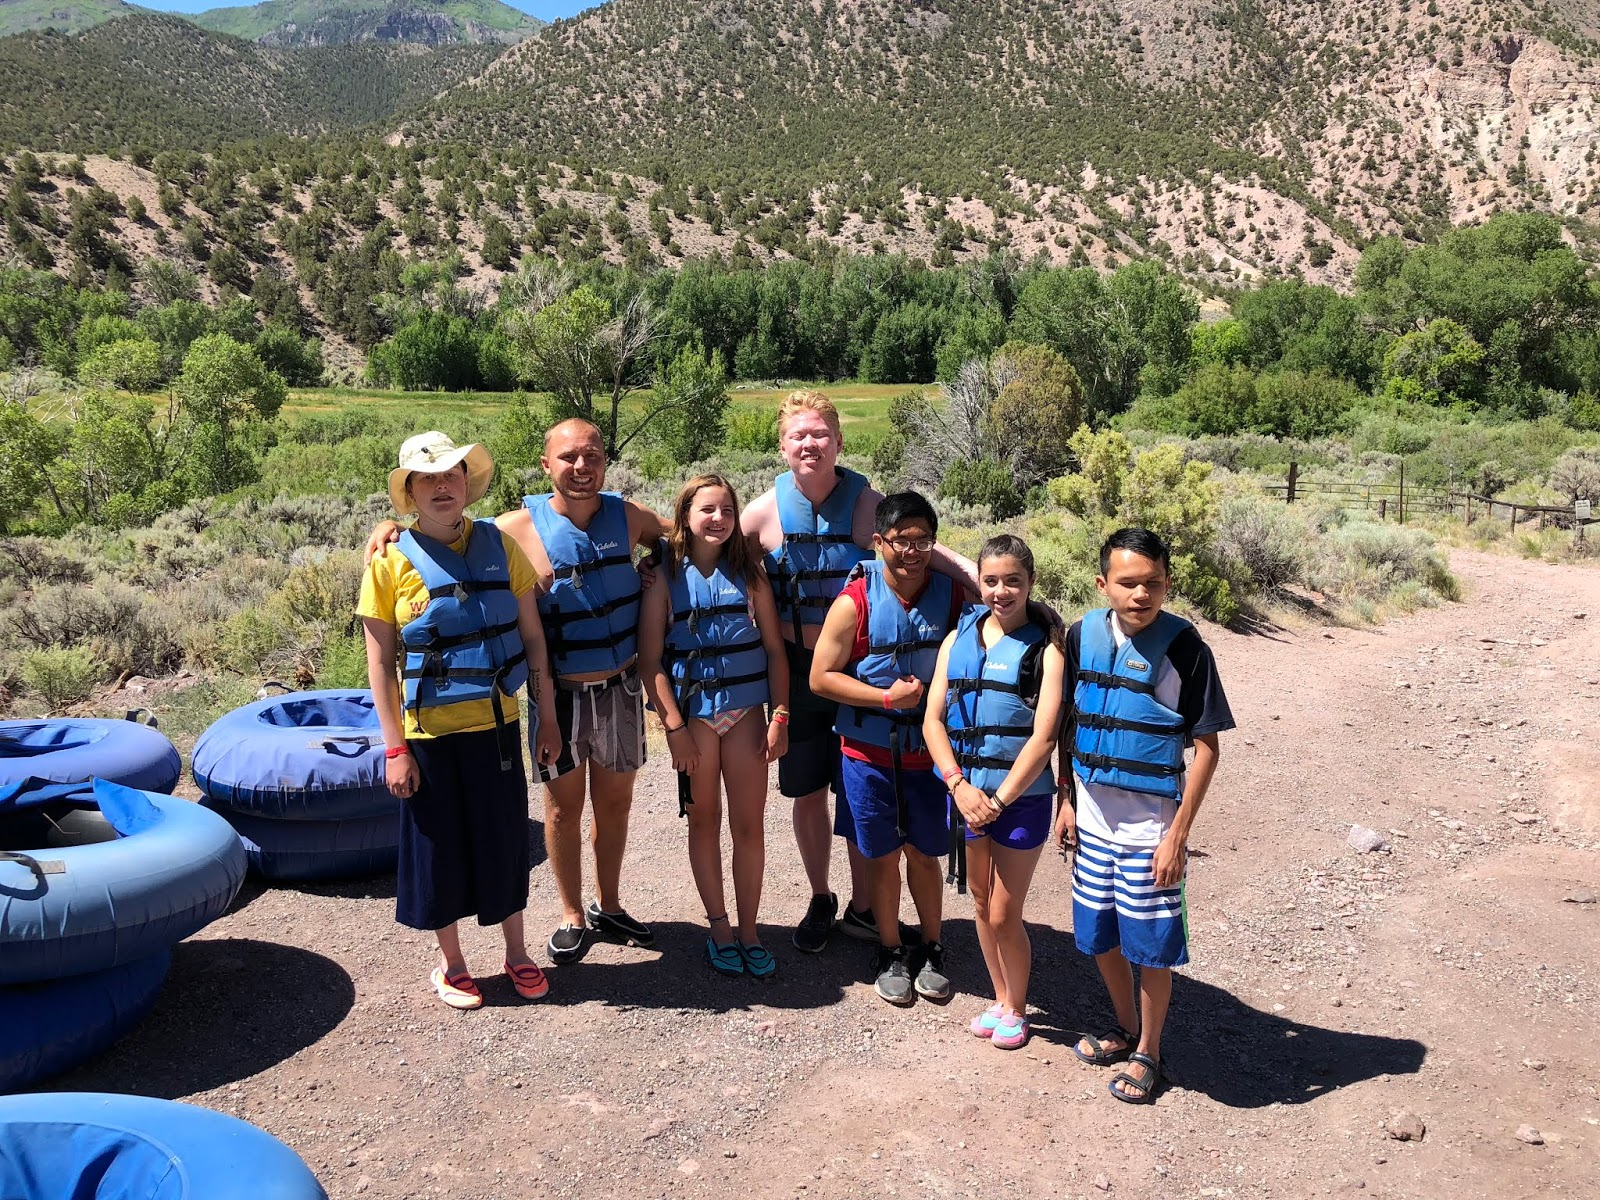 A group of female and male teenagers stand together with their life jackets on before going tubing in the river.